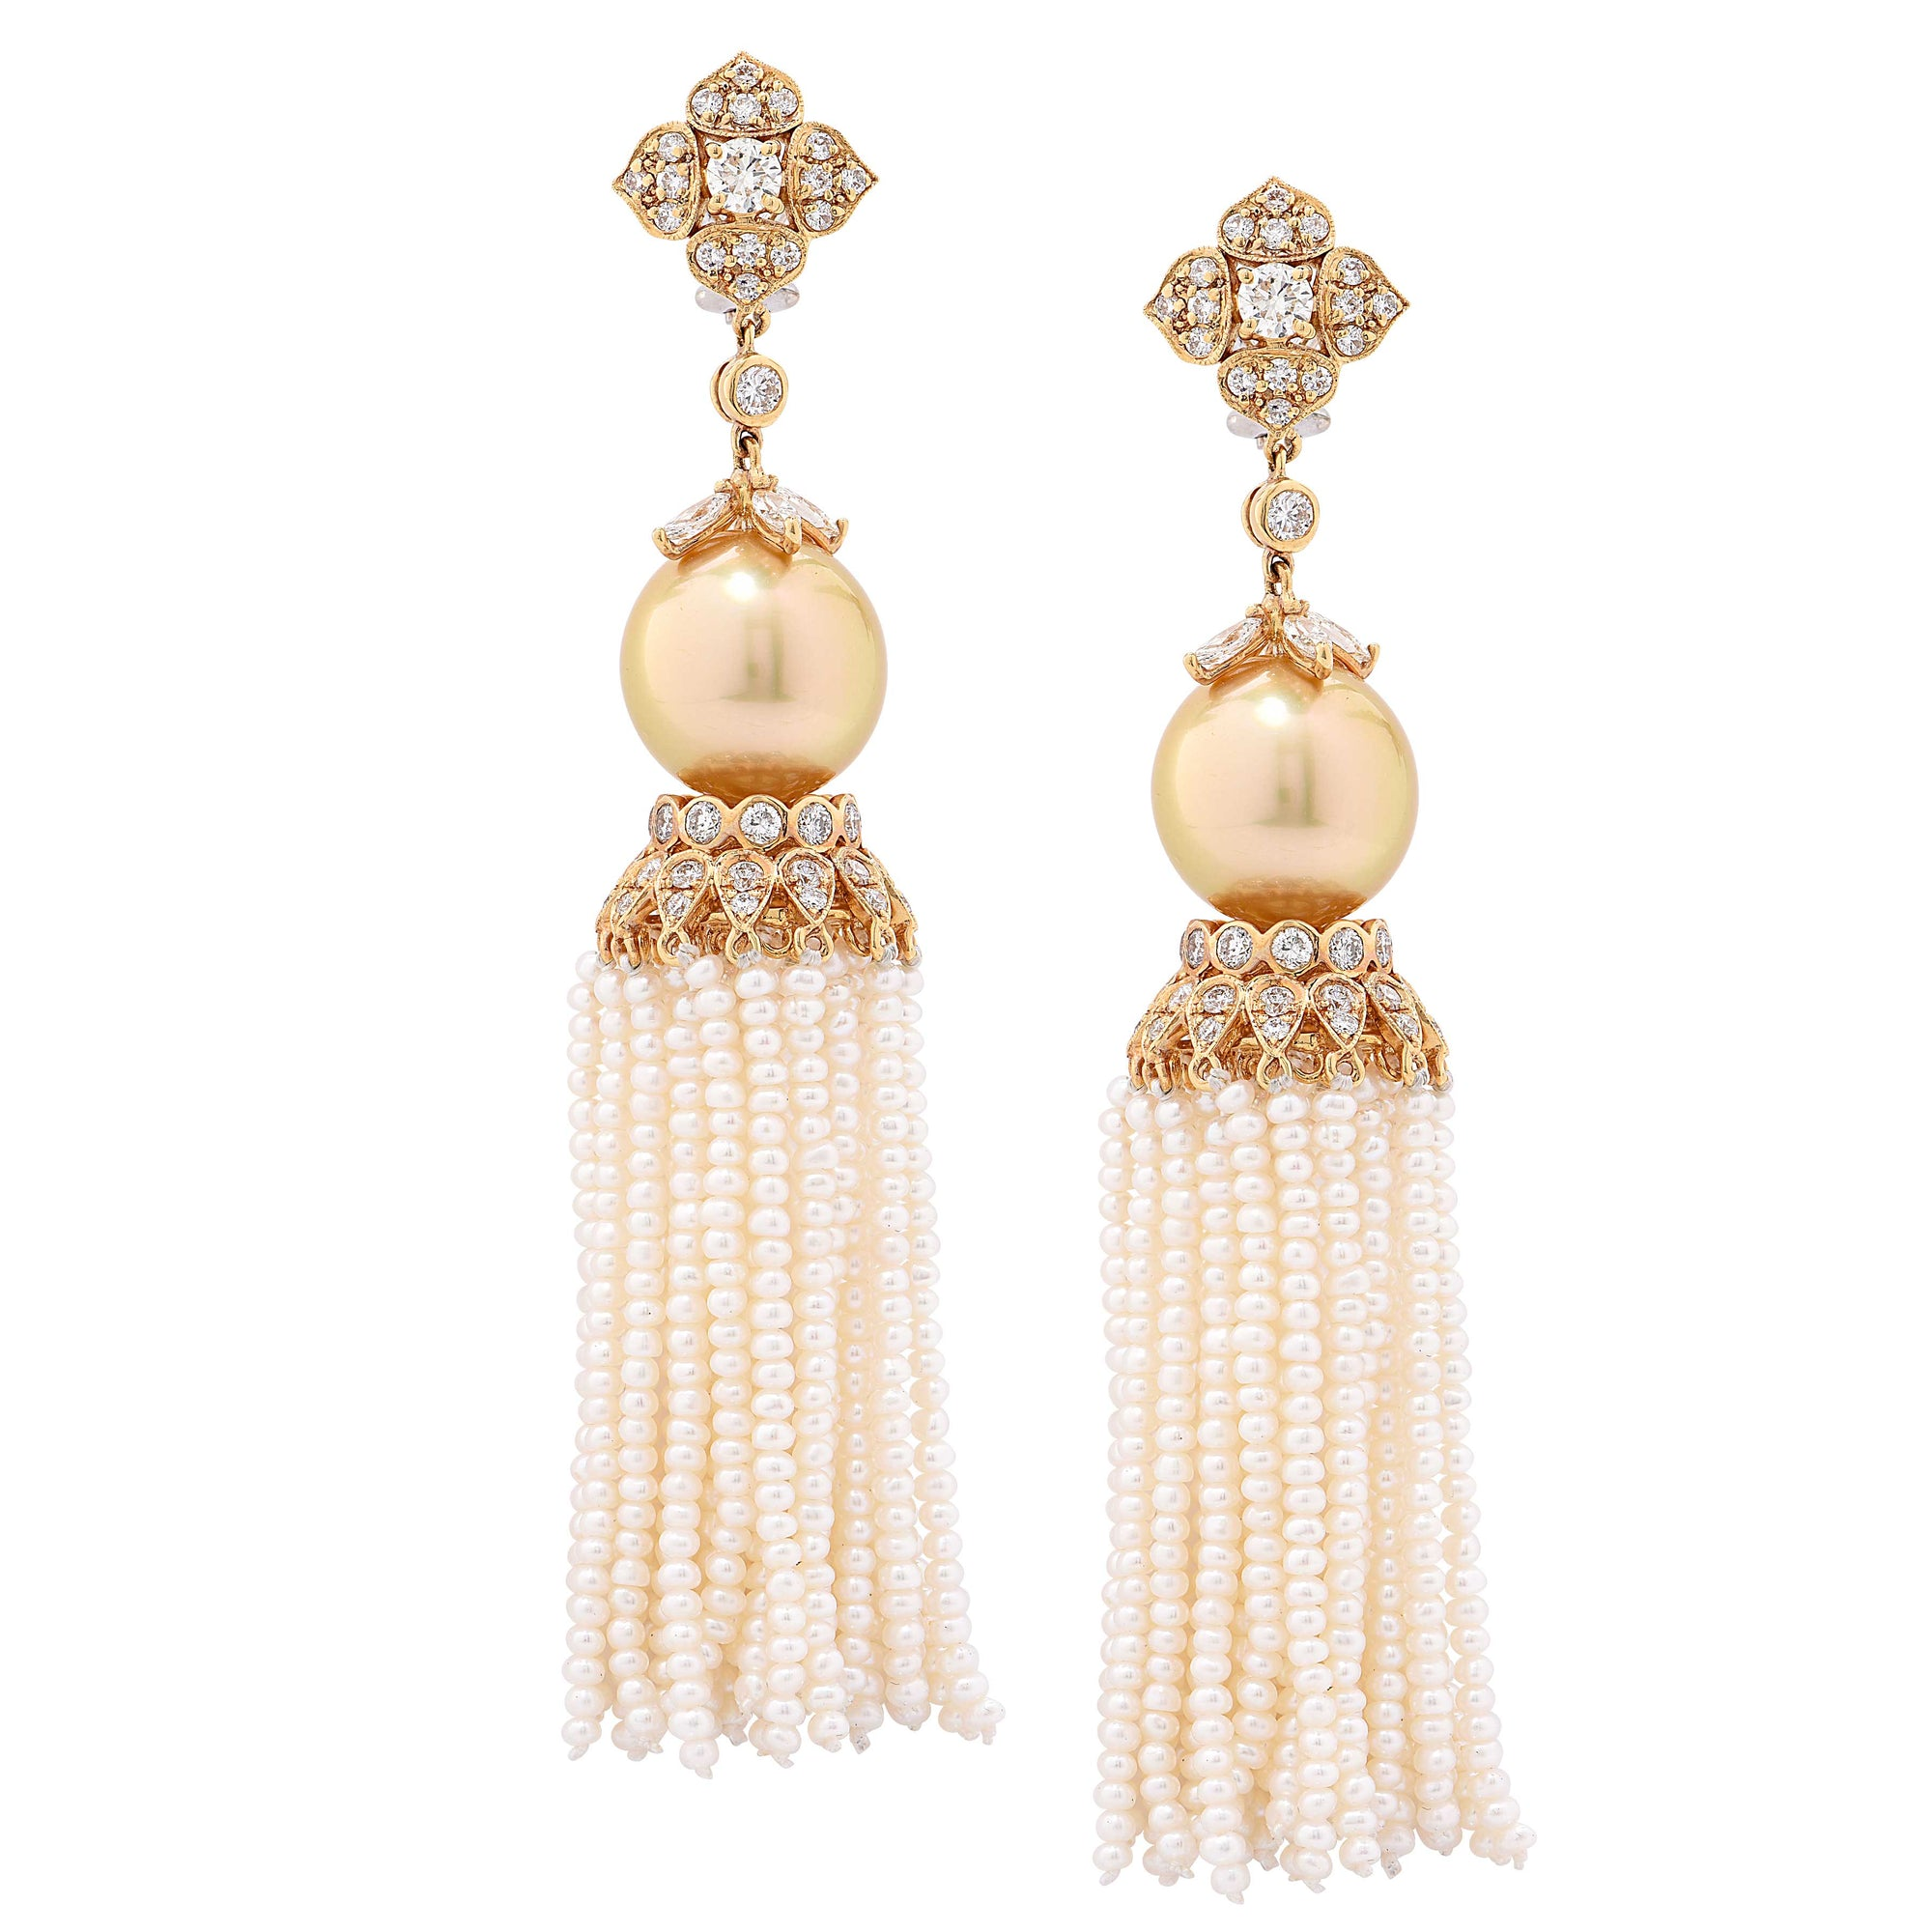 4.05 Carat Diamond and Golden South Sea Pearl Ear Clips with Removable Tassel